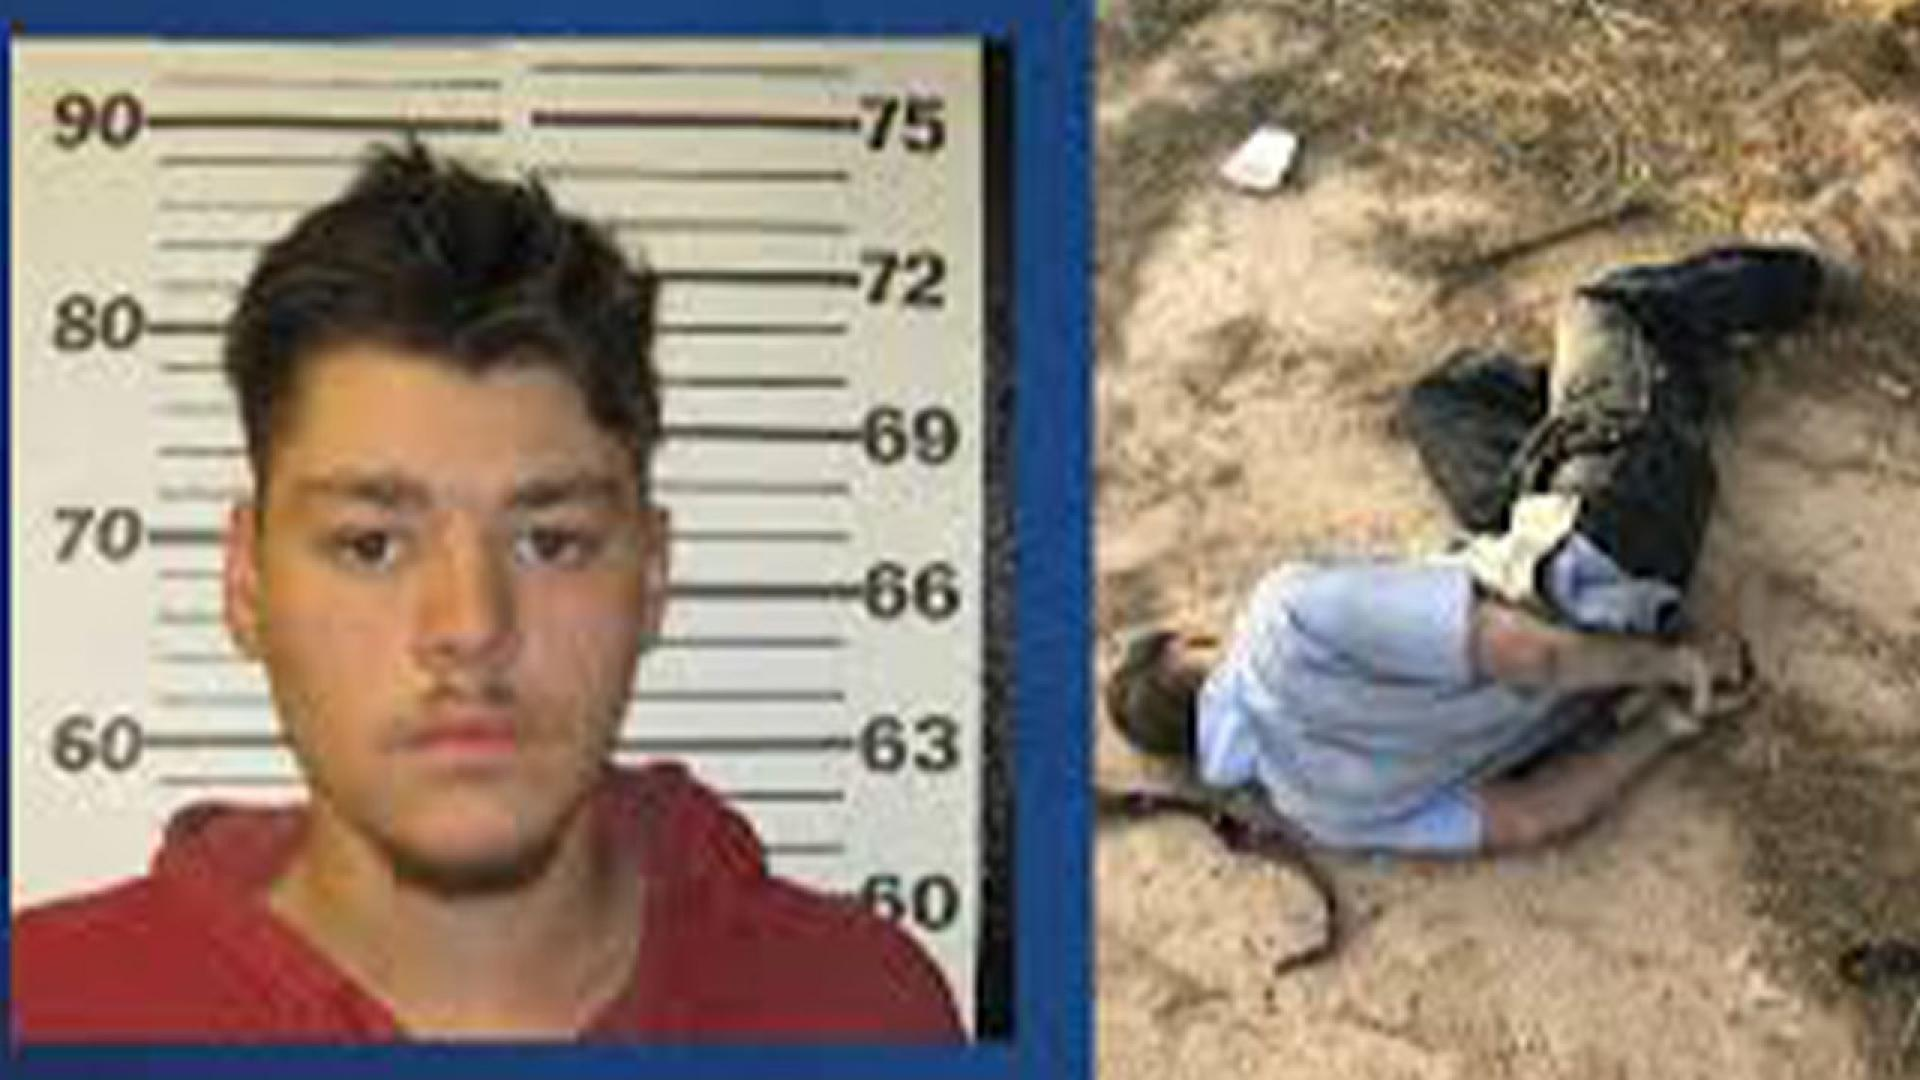 Brandon Soules, 19, faked his own kidnapping to get out of work.